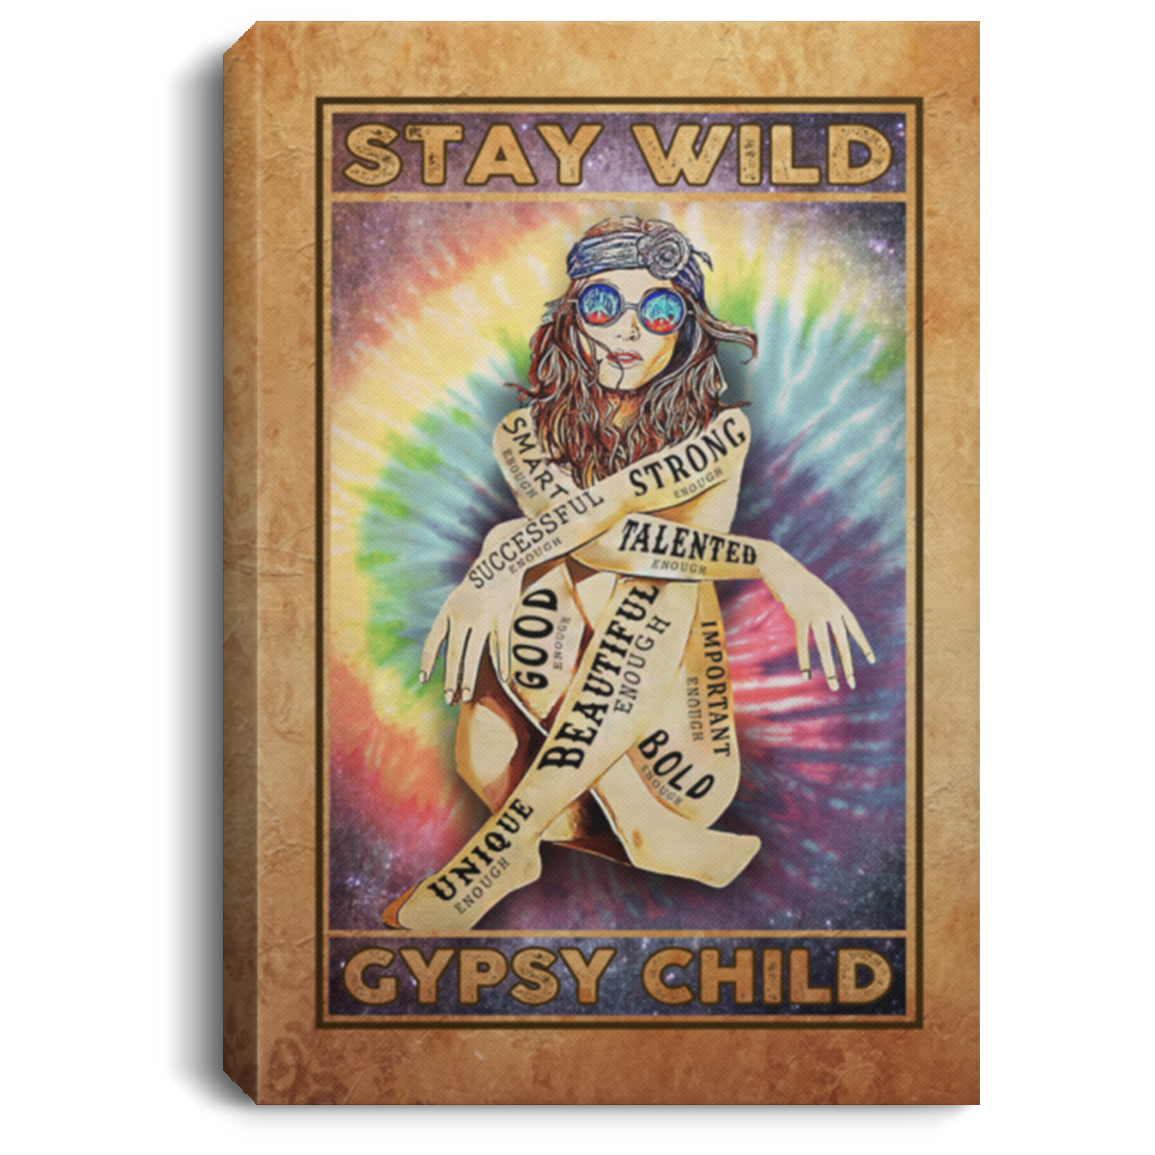 Stay Wild Gypsy Child Unique Beautiful Talented Strong Enough Portrait Poster